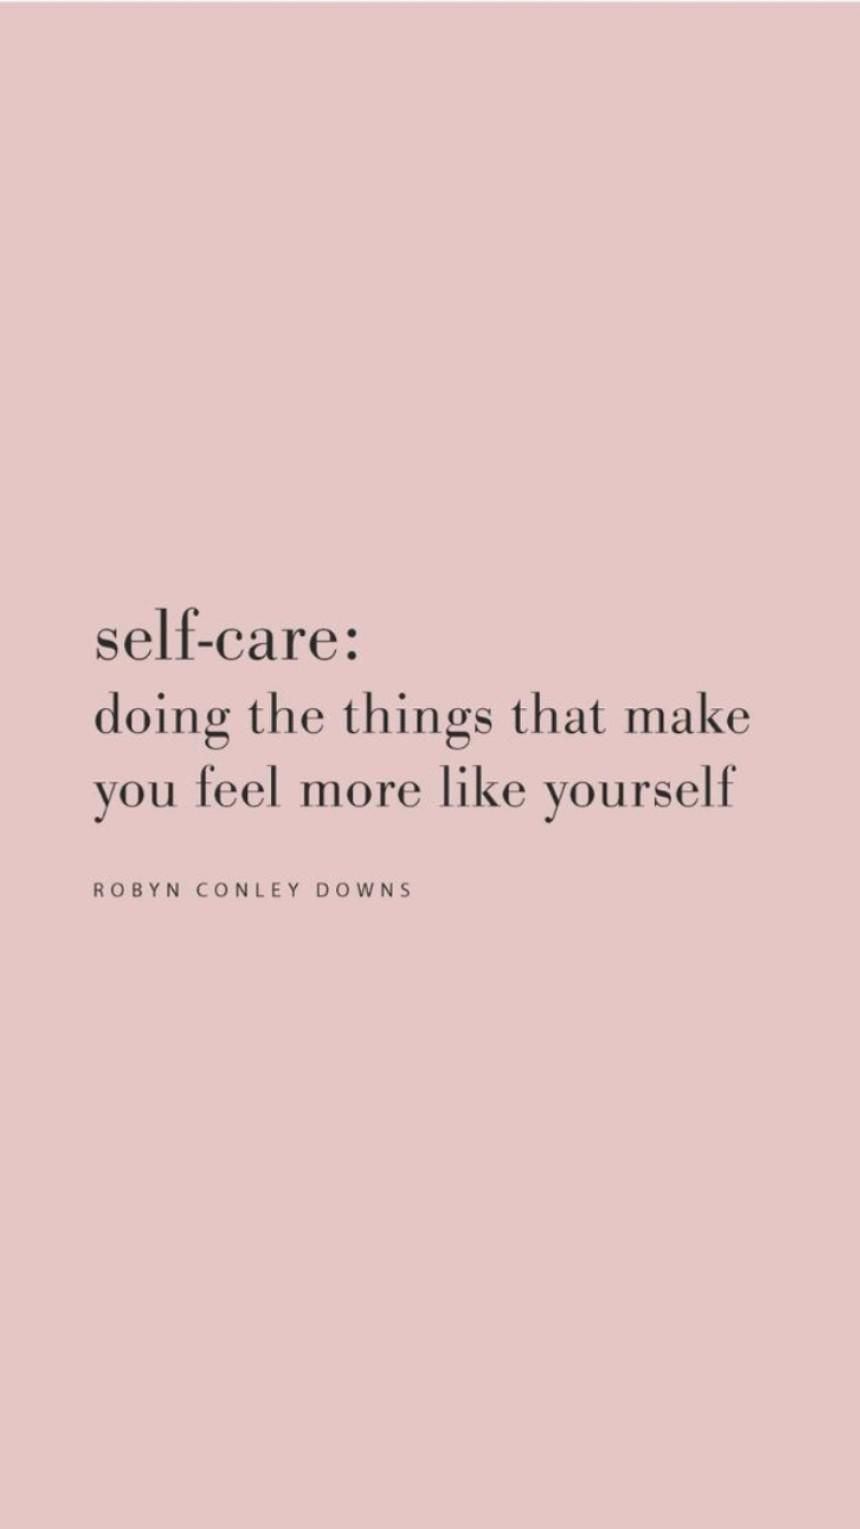 Selfcare Seems Simple But Often Forgotten 💥I'm  Here To Help You